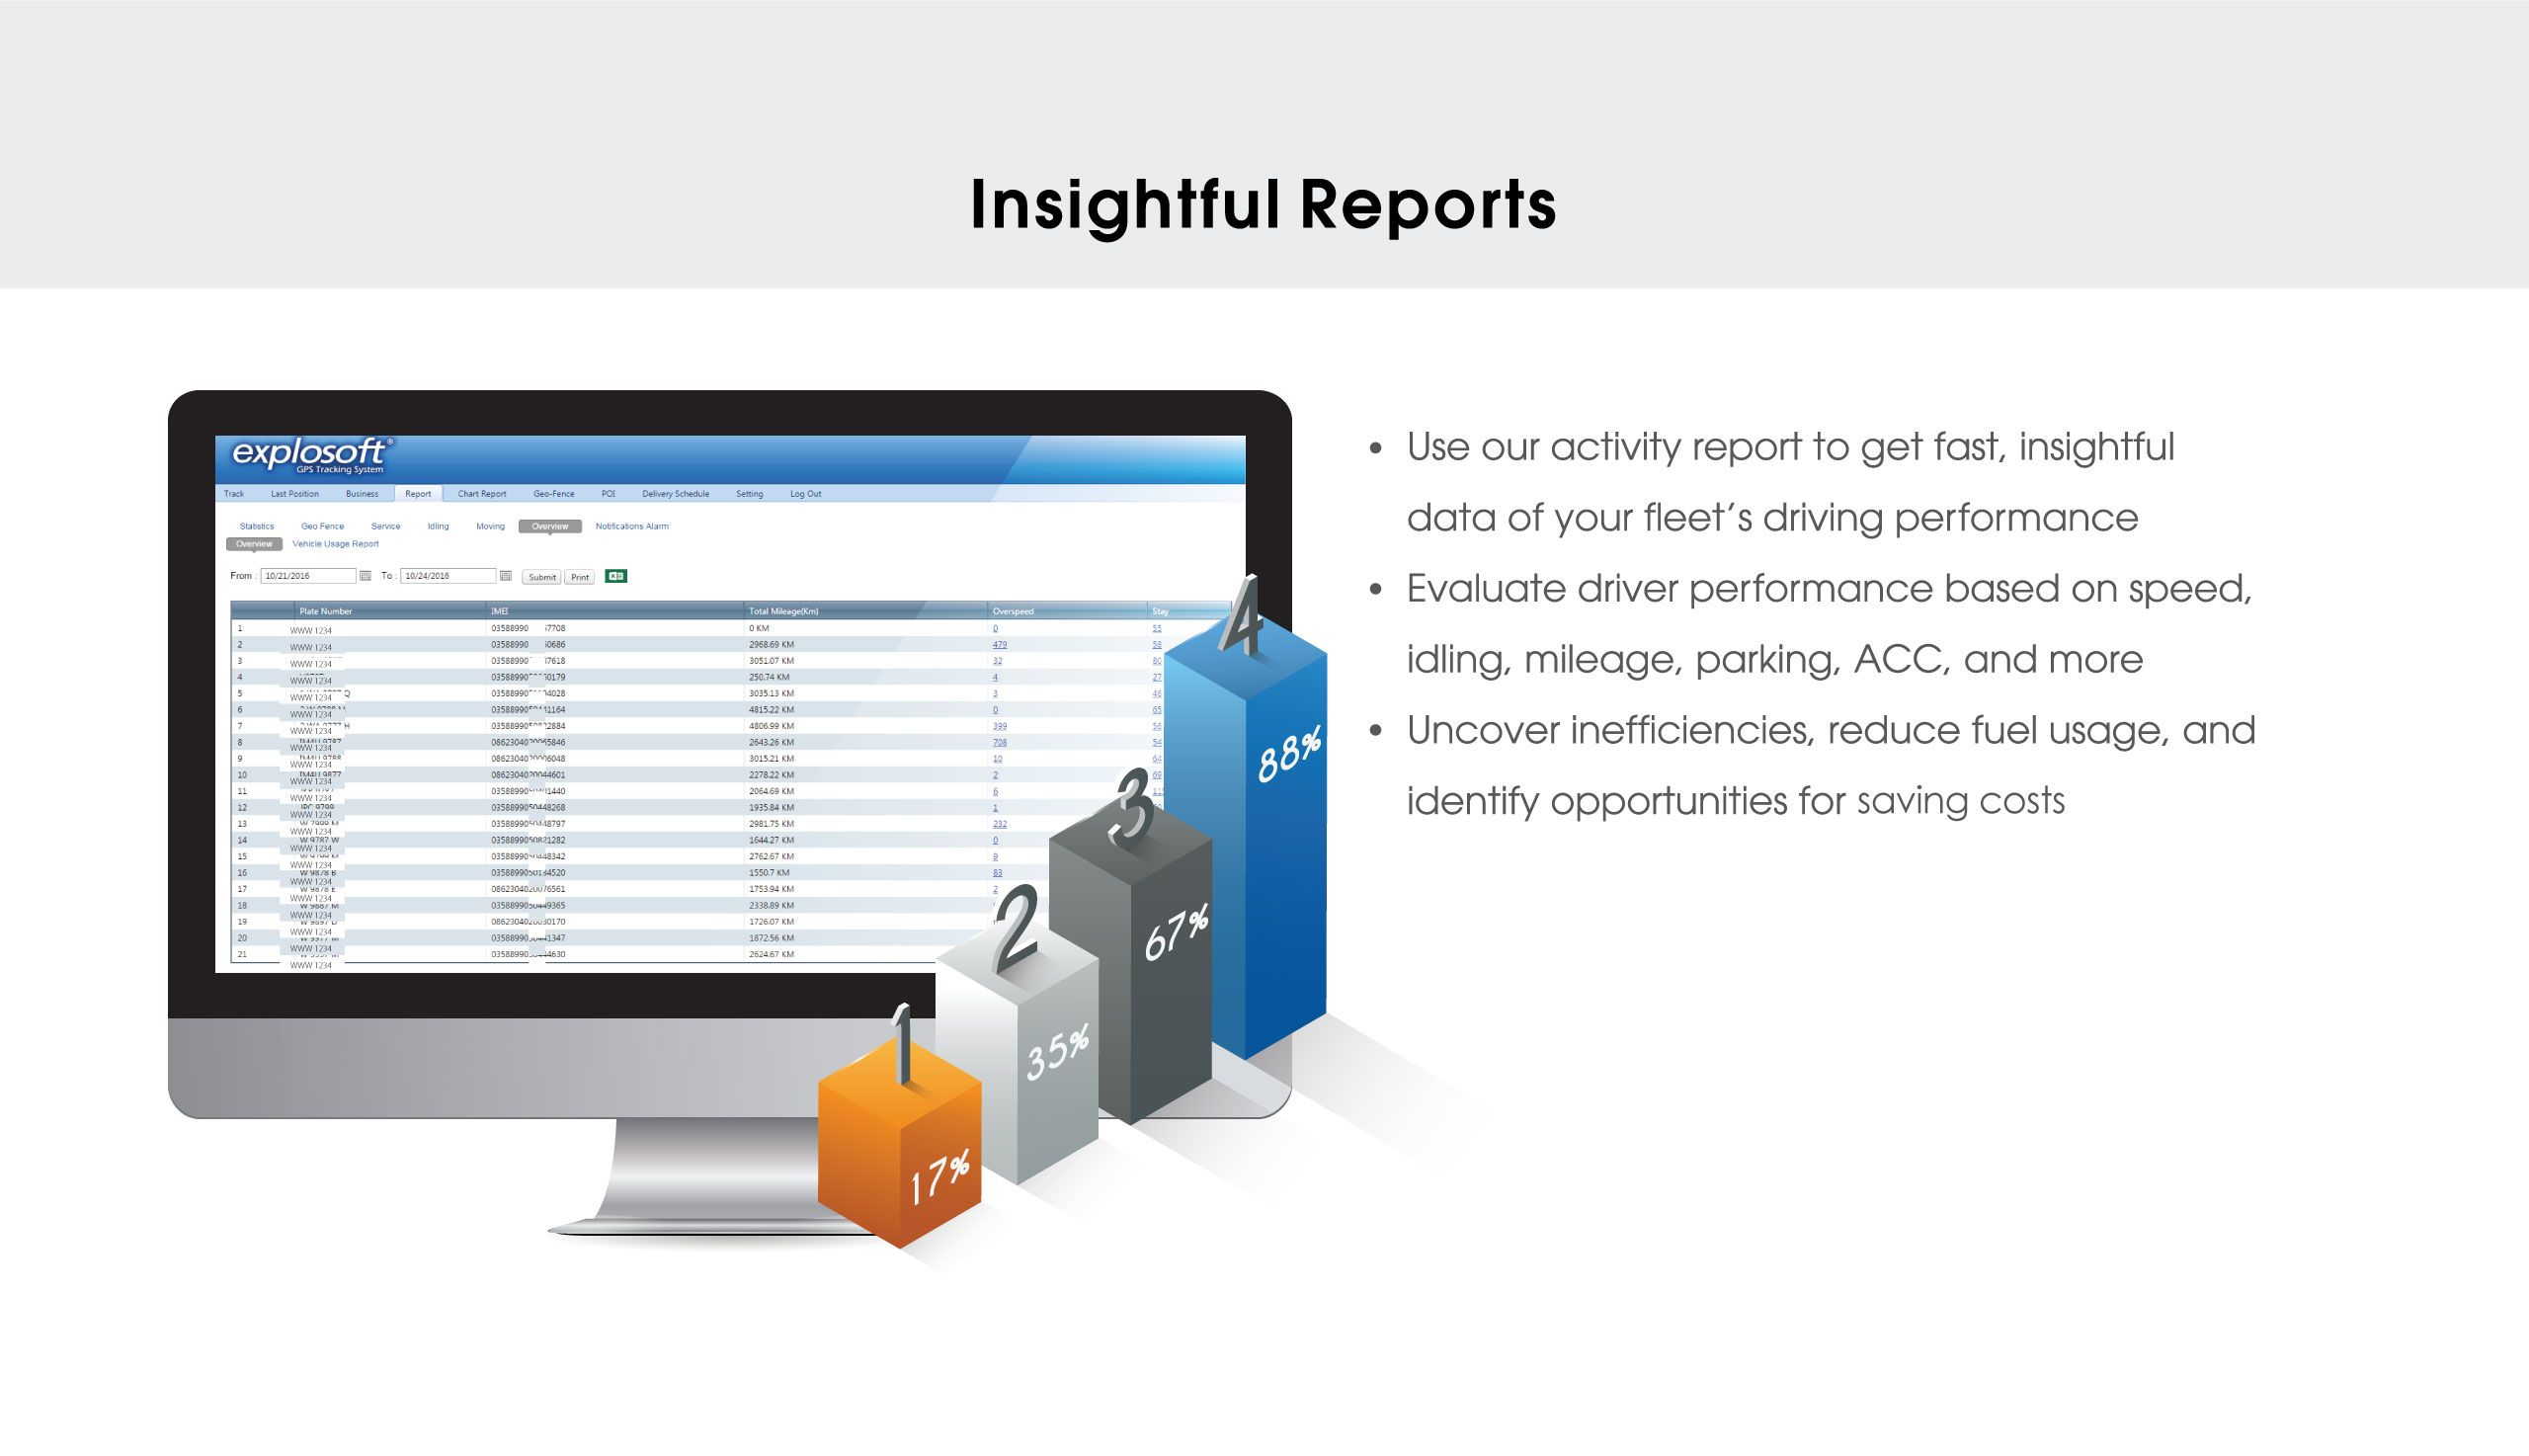 Use Our Activity Report To Get Fast Insightful Data Of Your